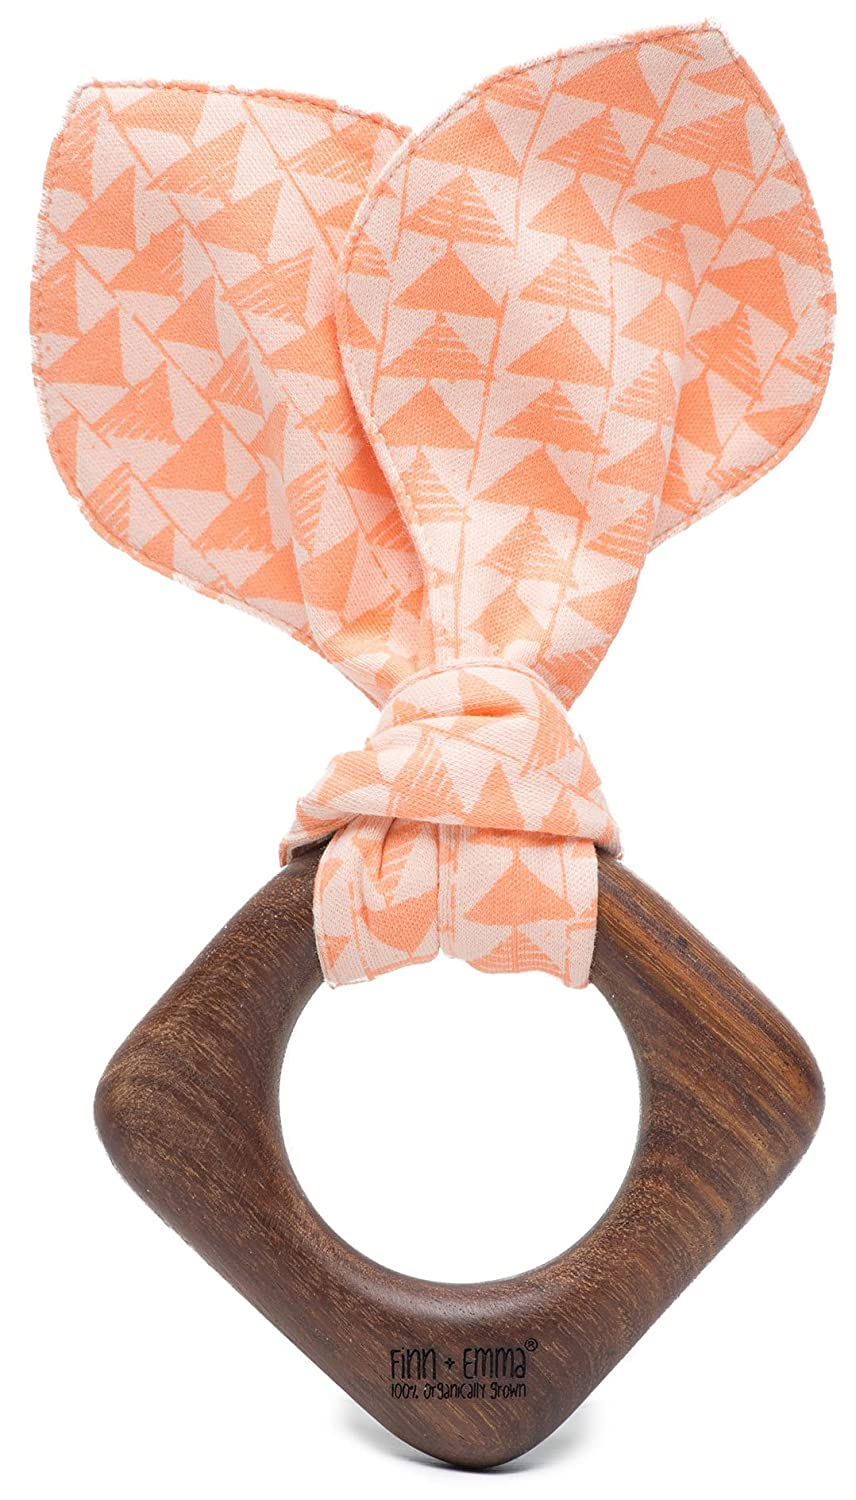 Finn + Emma天然木製と有機コットンTeething Ring for Baby Boy or Girl One Size G03-0922A  Triangle Print B01CPX6EAE